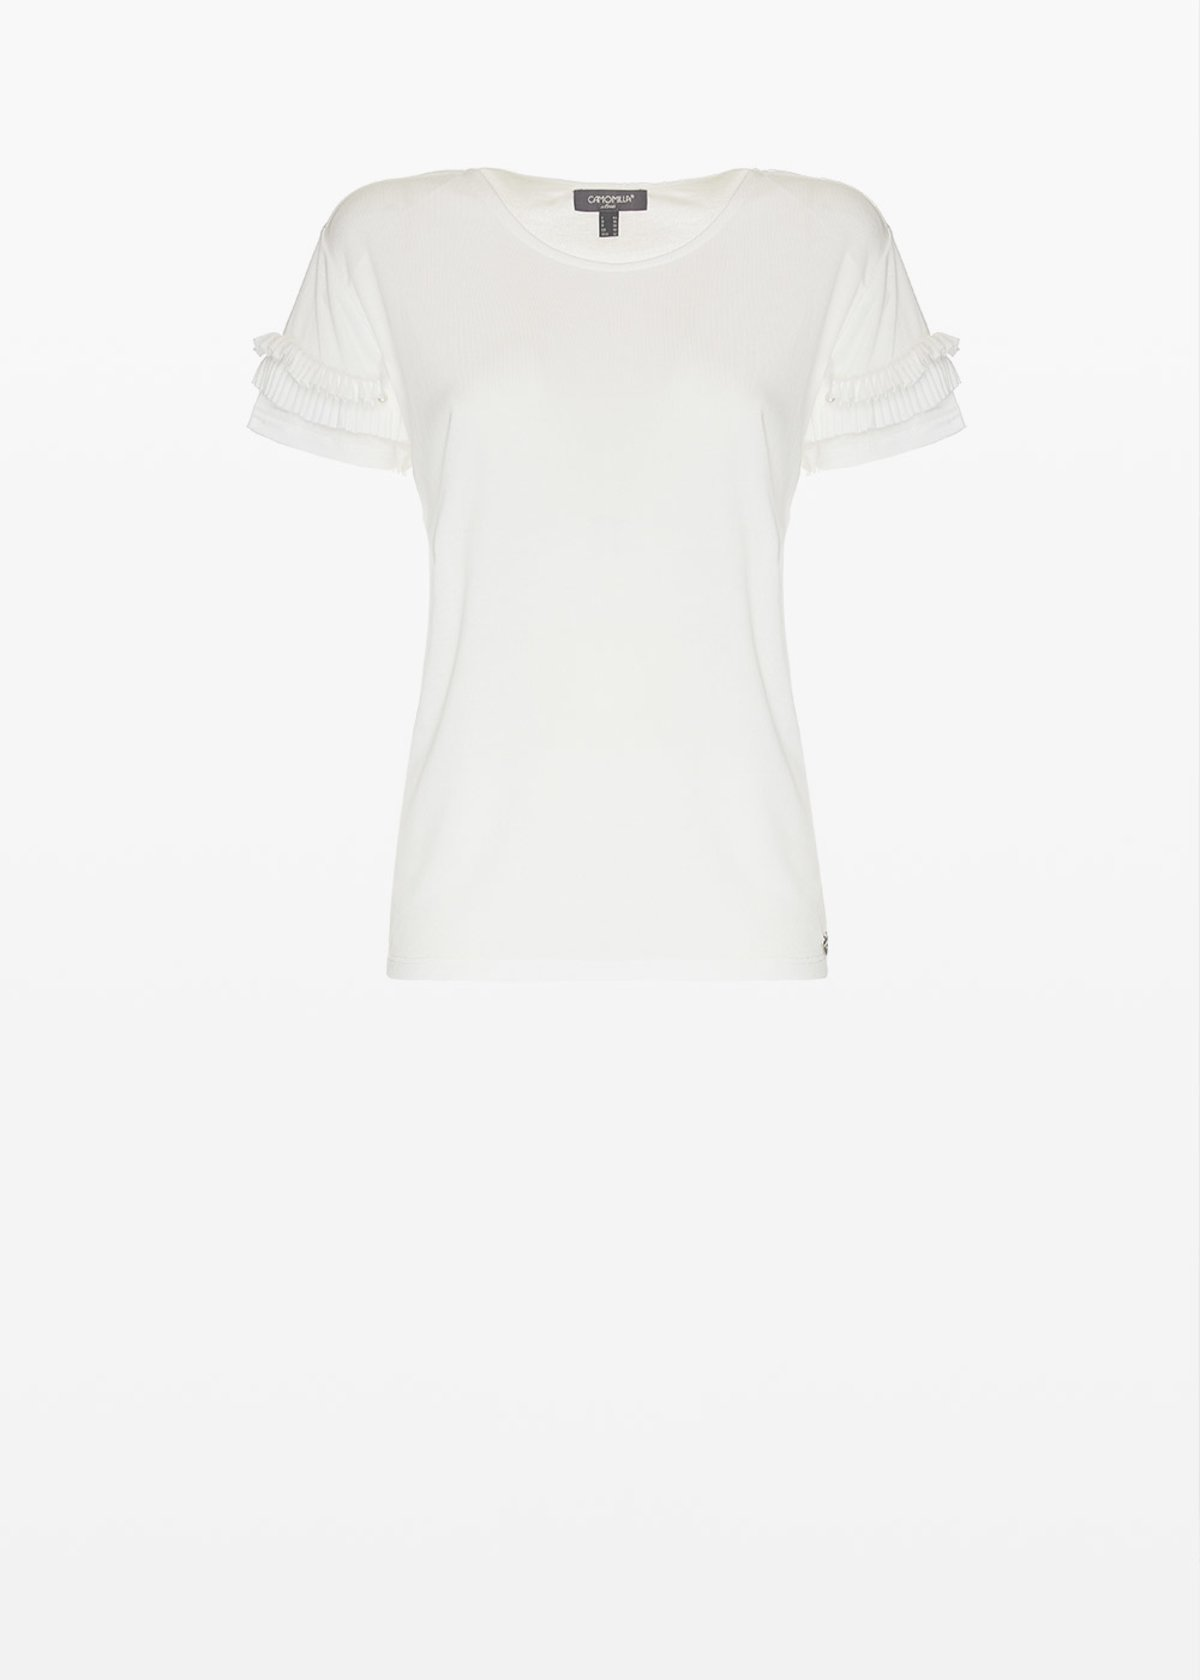 Sabry jersey t-shirt with ruffles on the cuffs